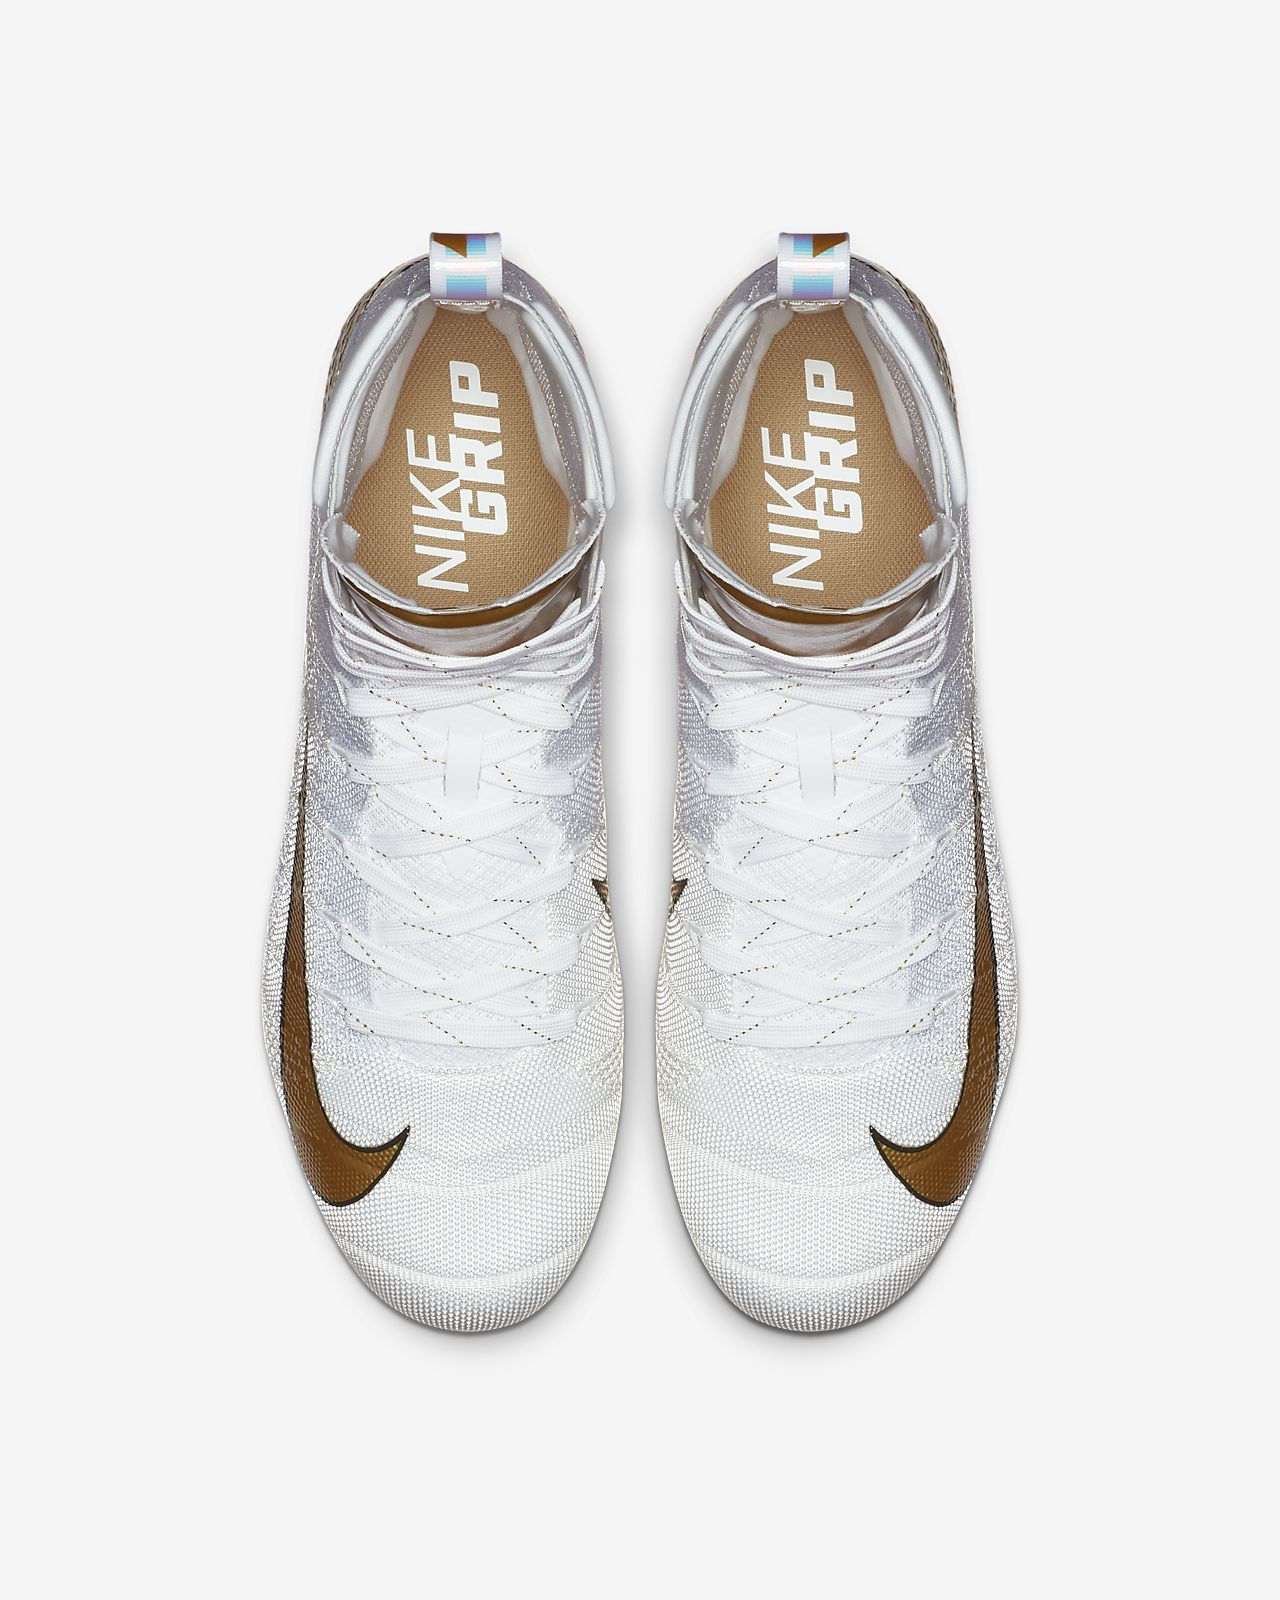 sports shoes 9c569 52434 ... Nike Vapor Untouchable 3 Elite Football Cleat